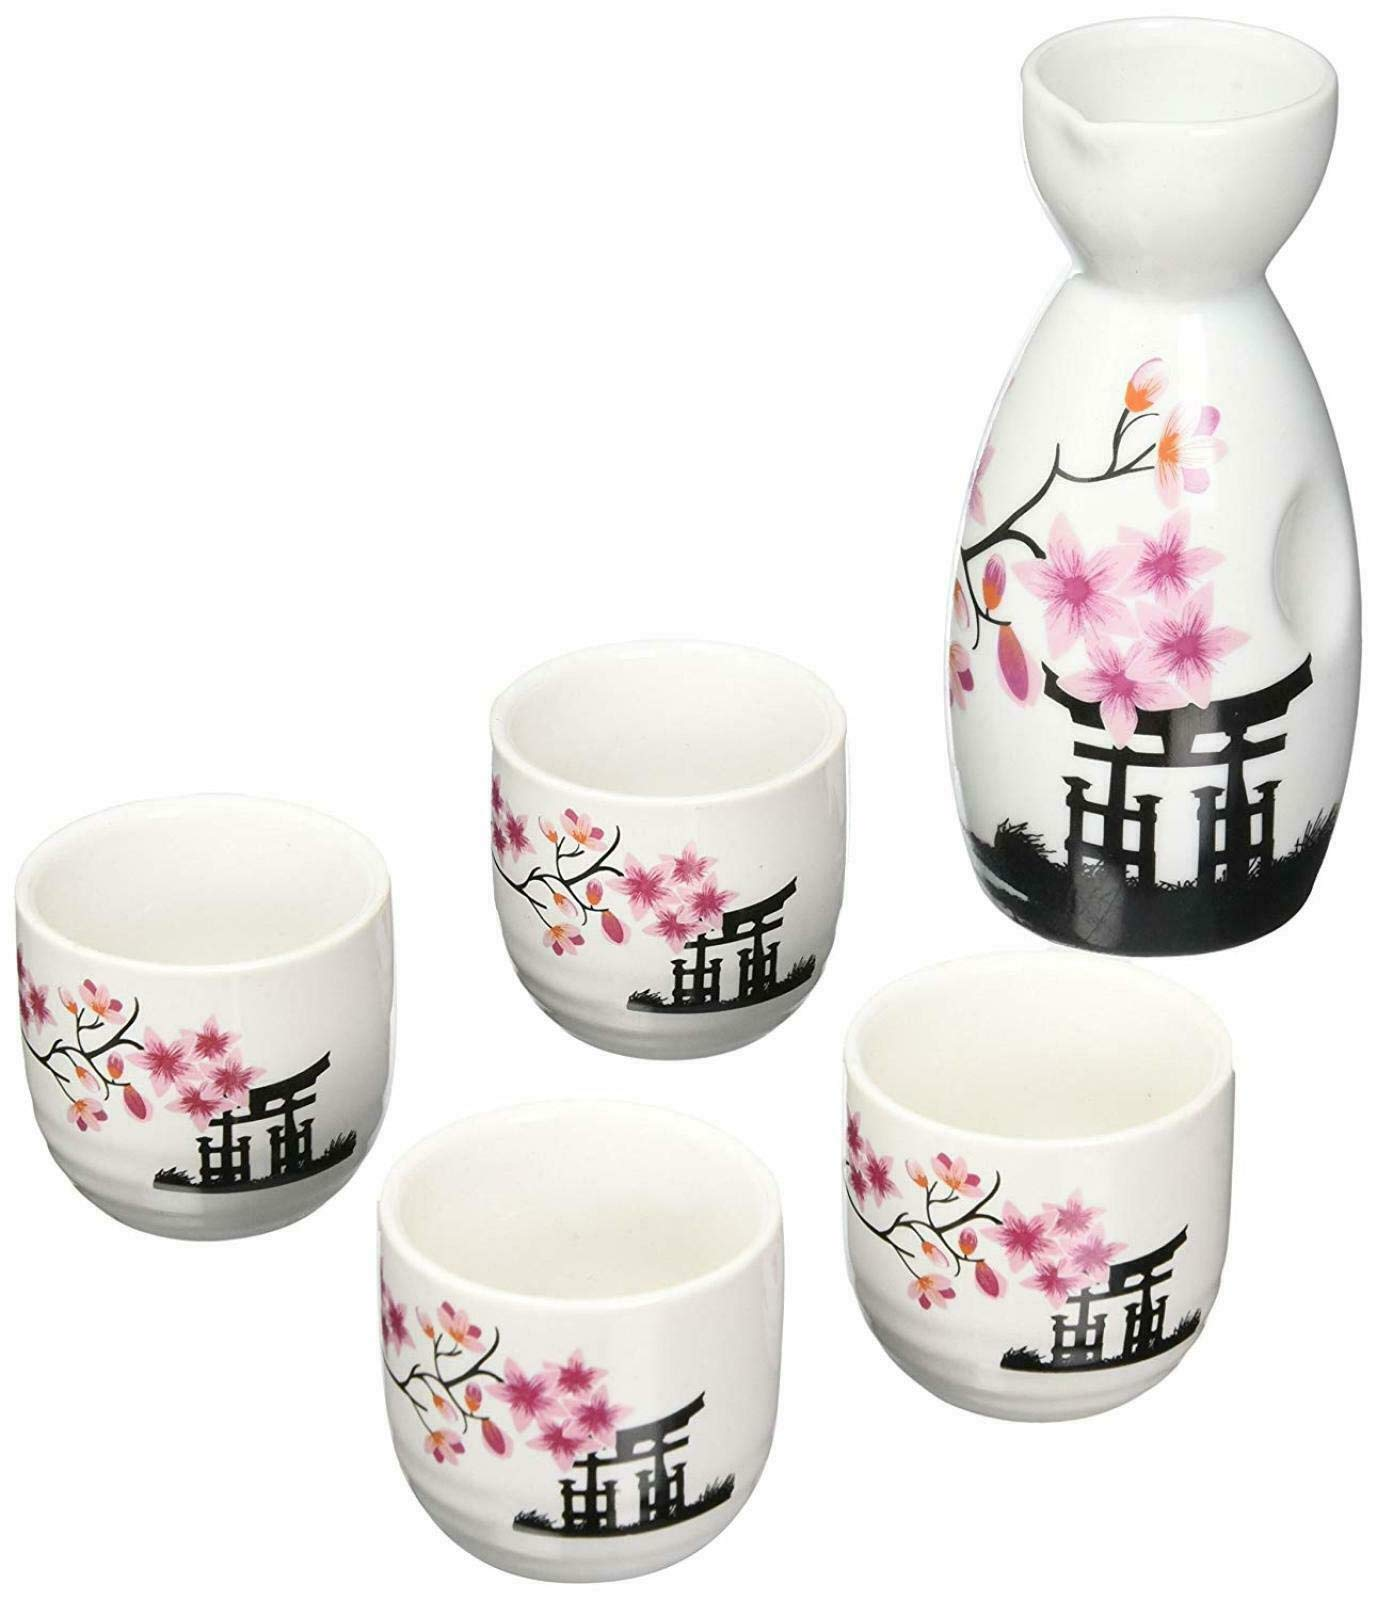 Japanese Cherry Blossom Sake Set - Includes 4 Ochoko (Cups) and 1 Tokkuri (Serving Bottle) in Gift Box by SciencePurchase